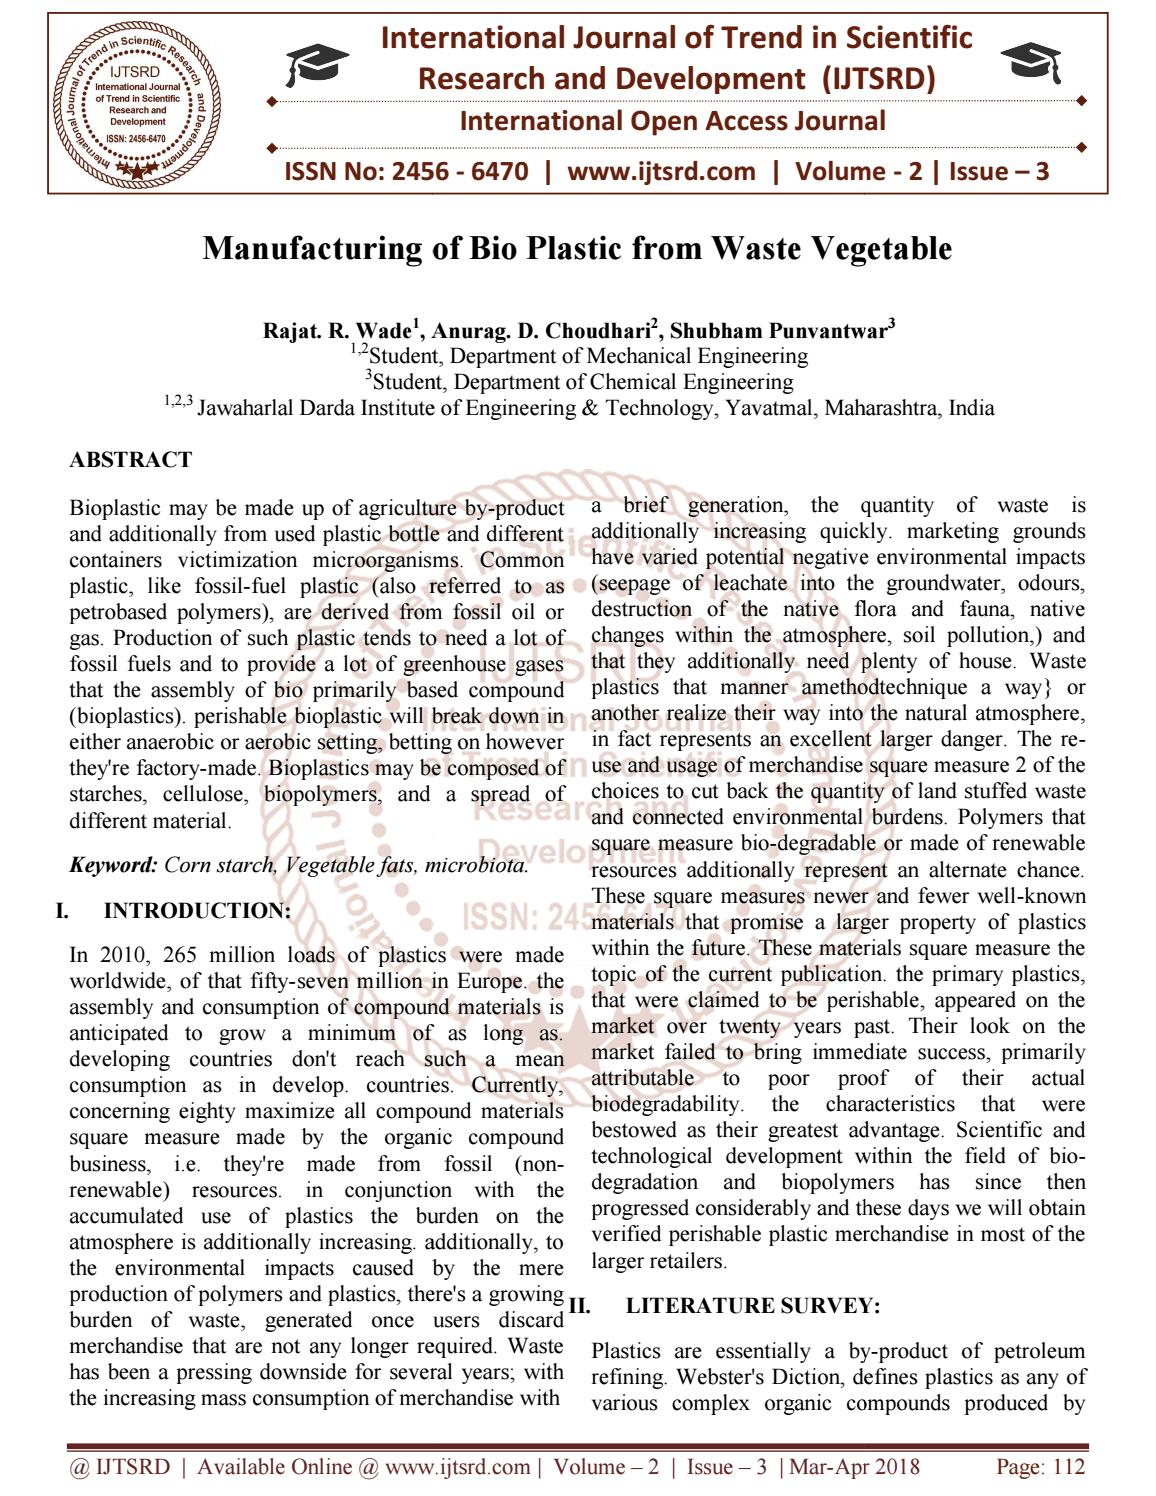 Manufacturing of Bio Plastic from Waste Vegetable by